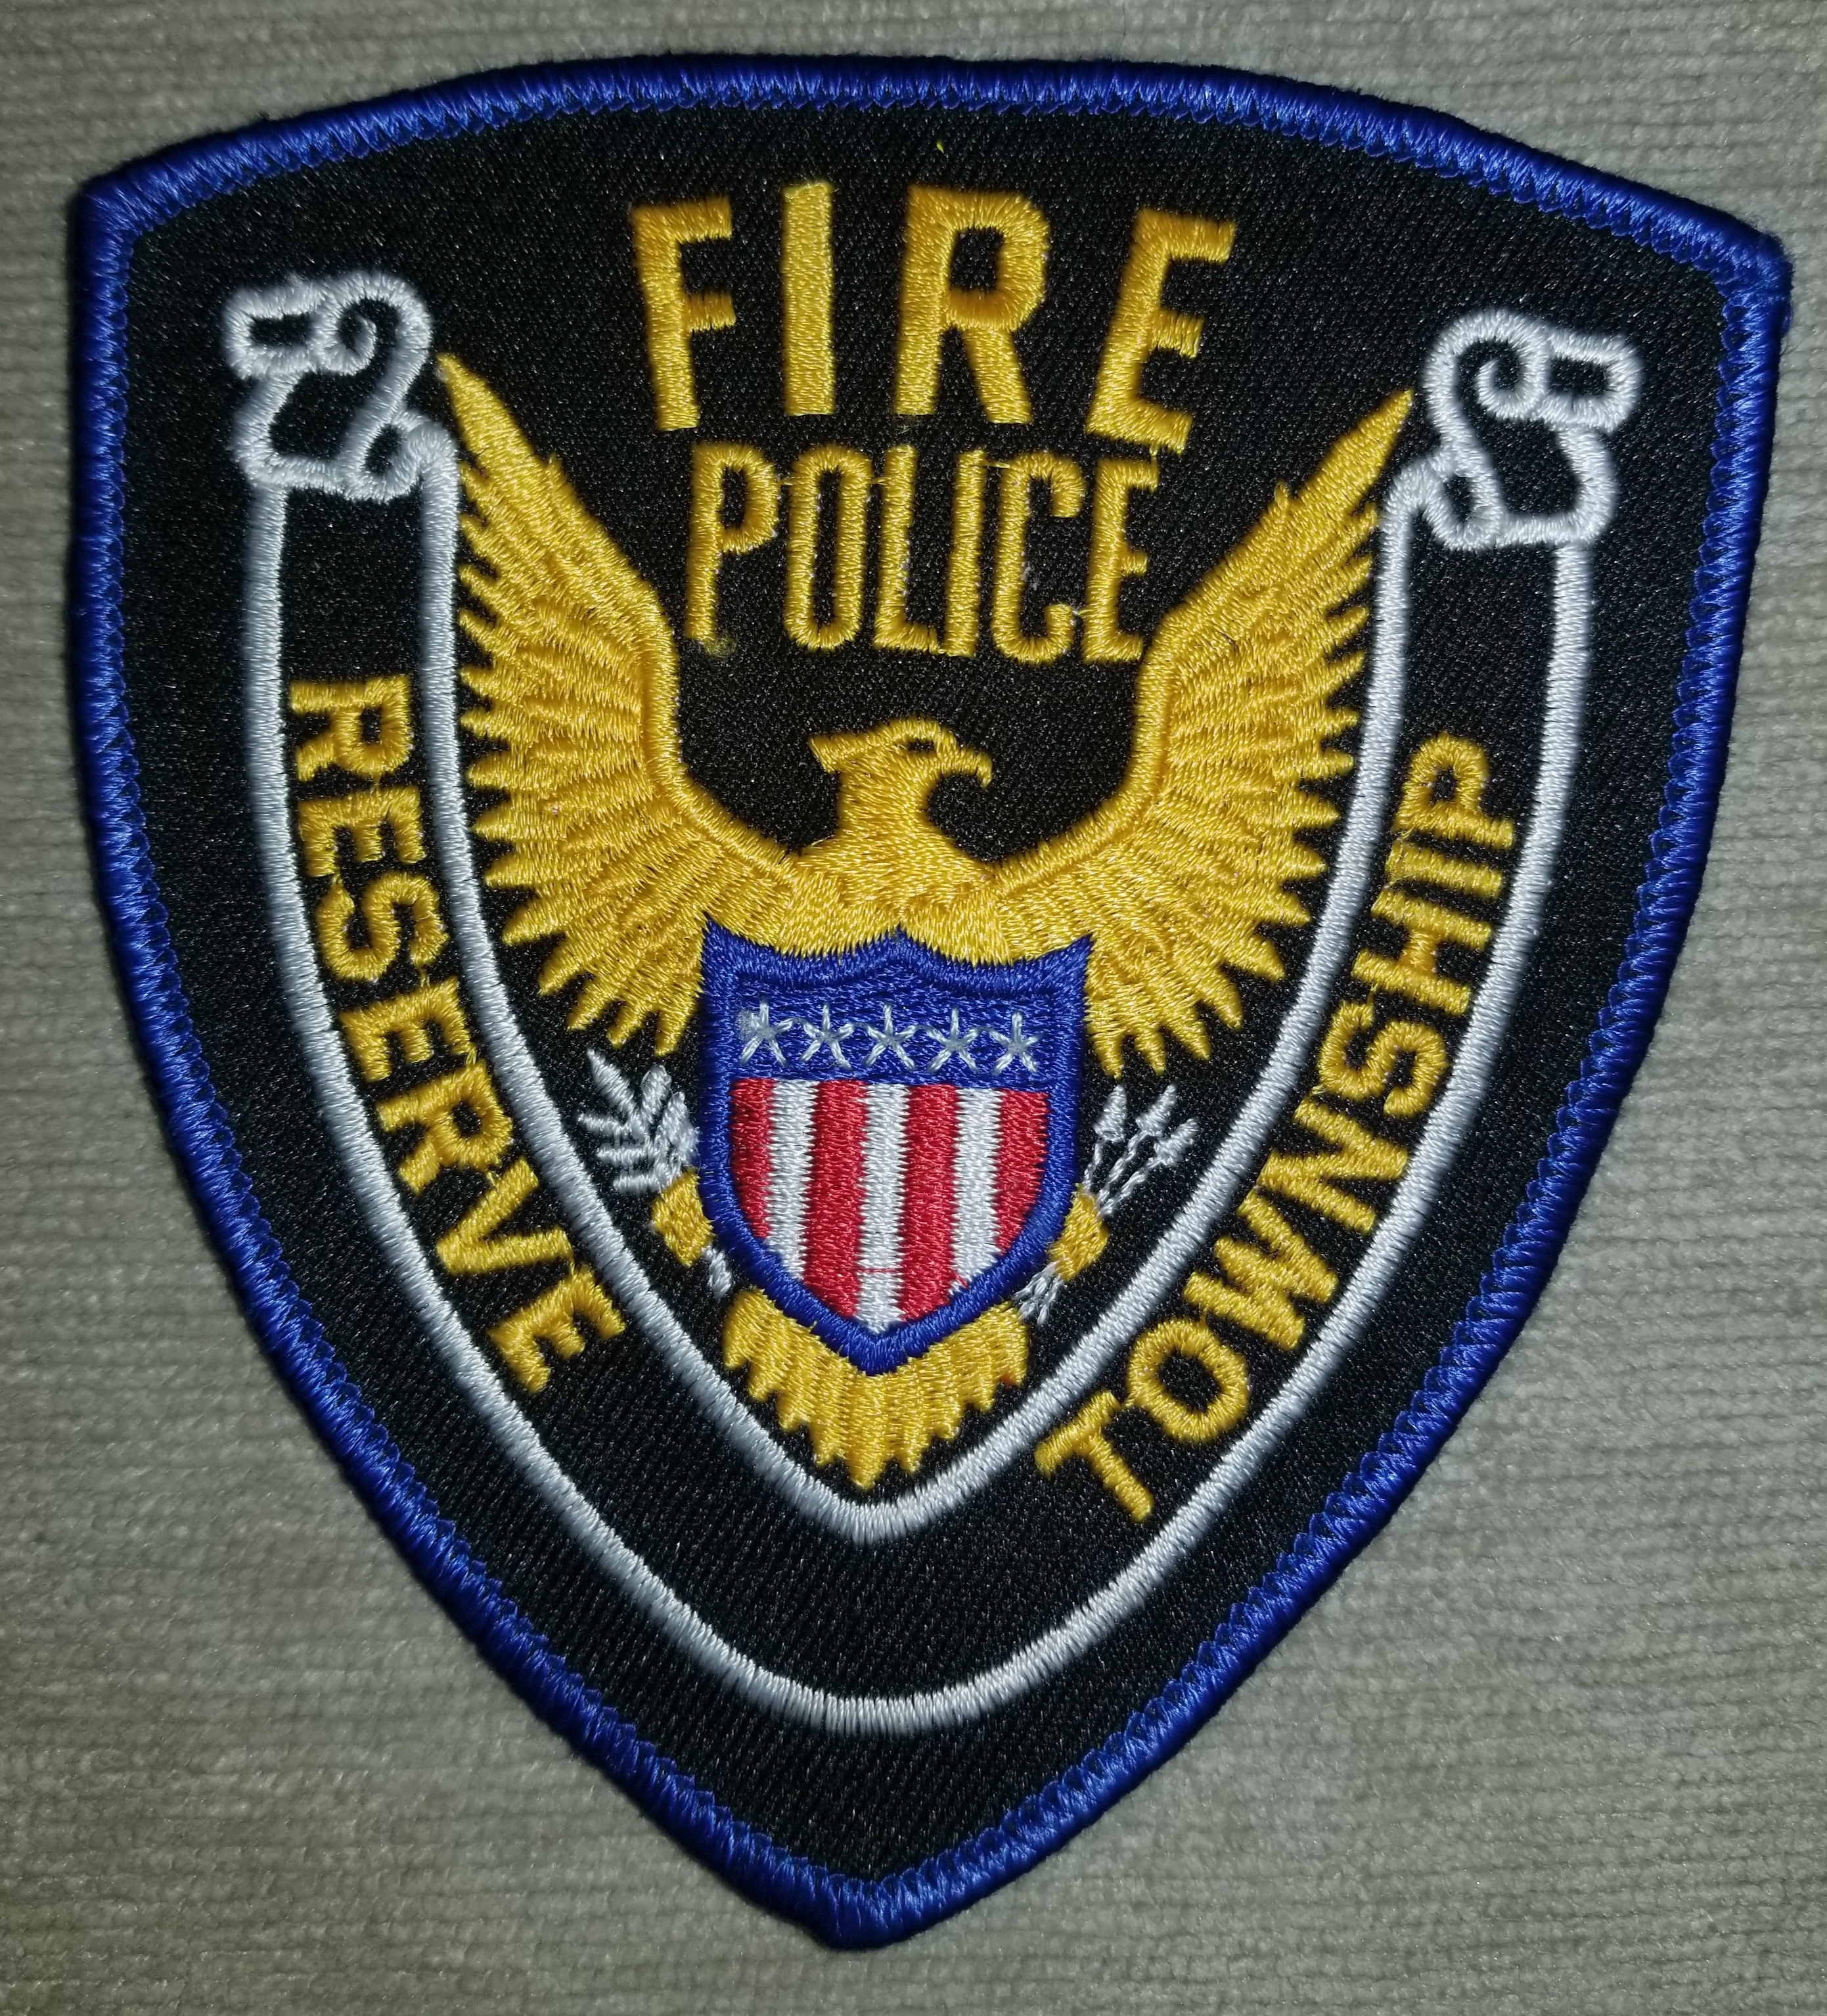 Reserve Township Fire Police PA